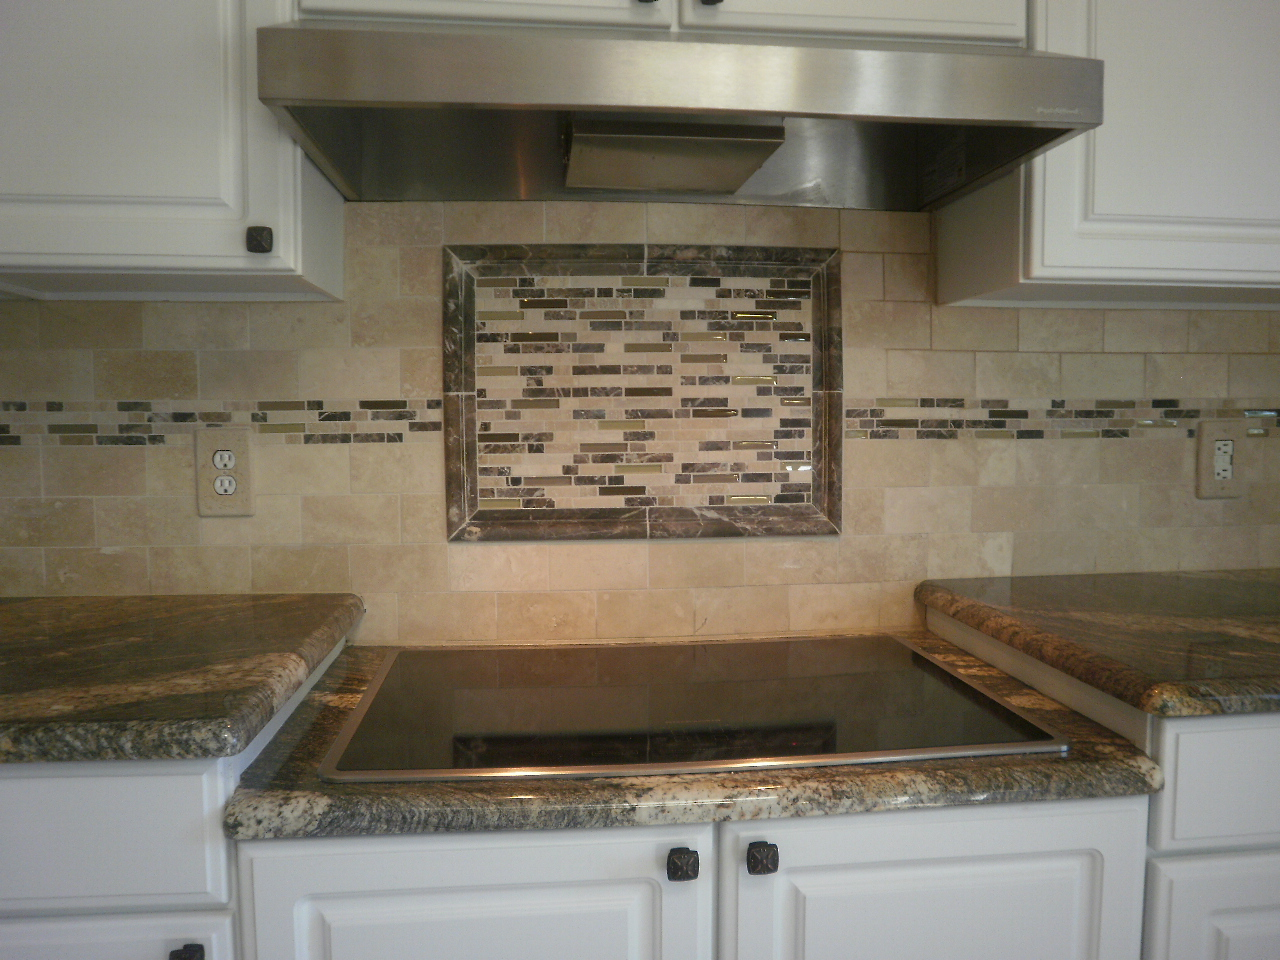 Kitchen backsplash ideas glass tile afreakatheart Backsplash mosaic tile